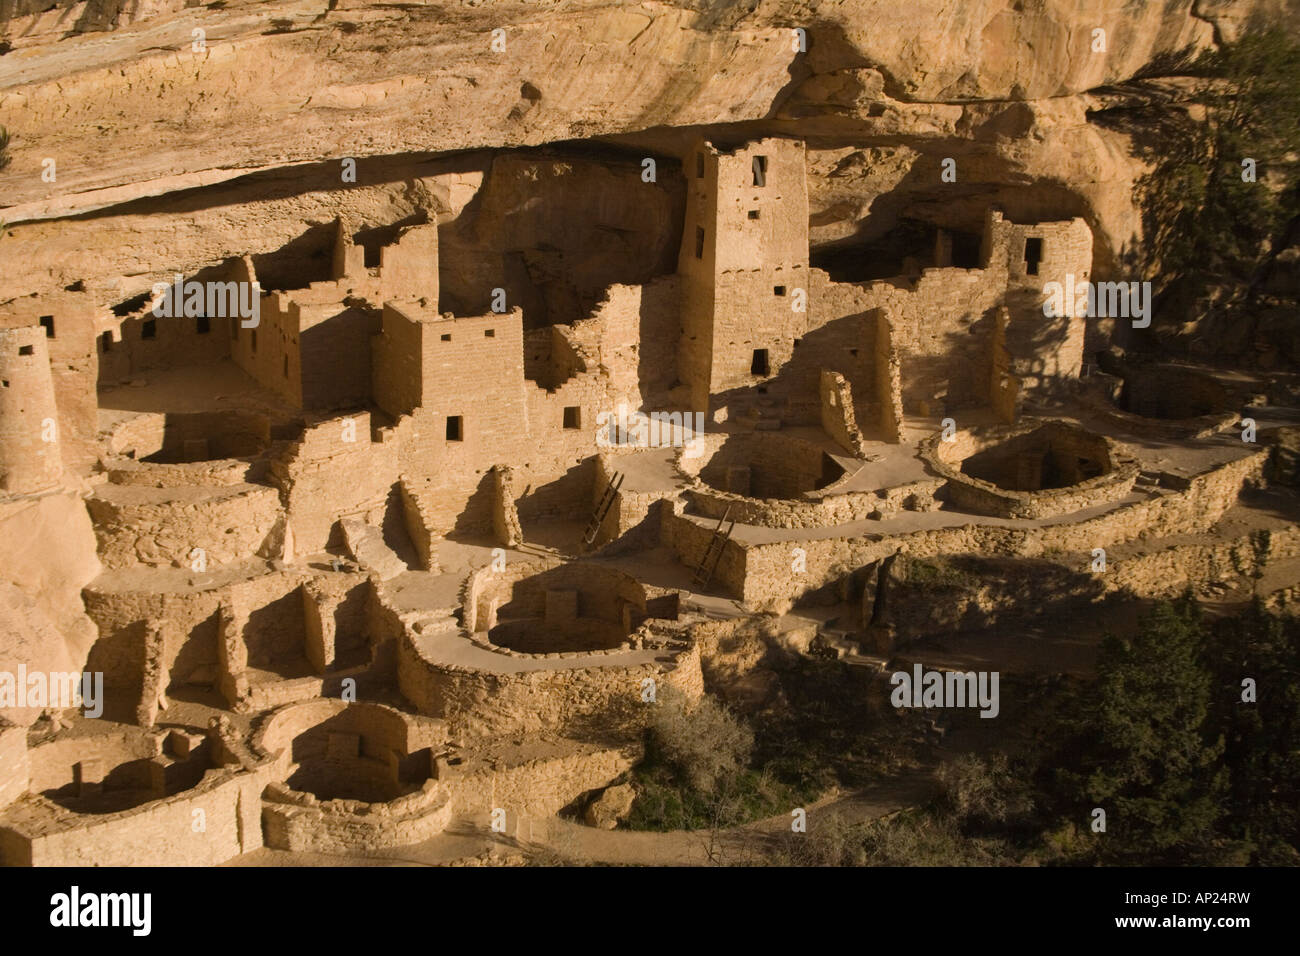 3th century native indian cliff buildings Mesa Verde National Park Cliff Palace the best known of the cliff dwellings - Stock Image